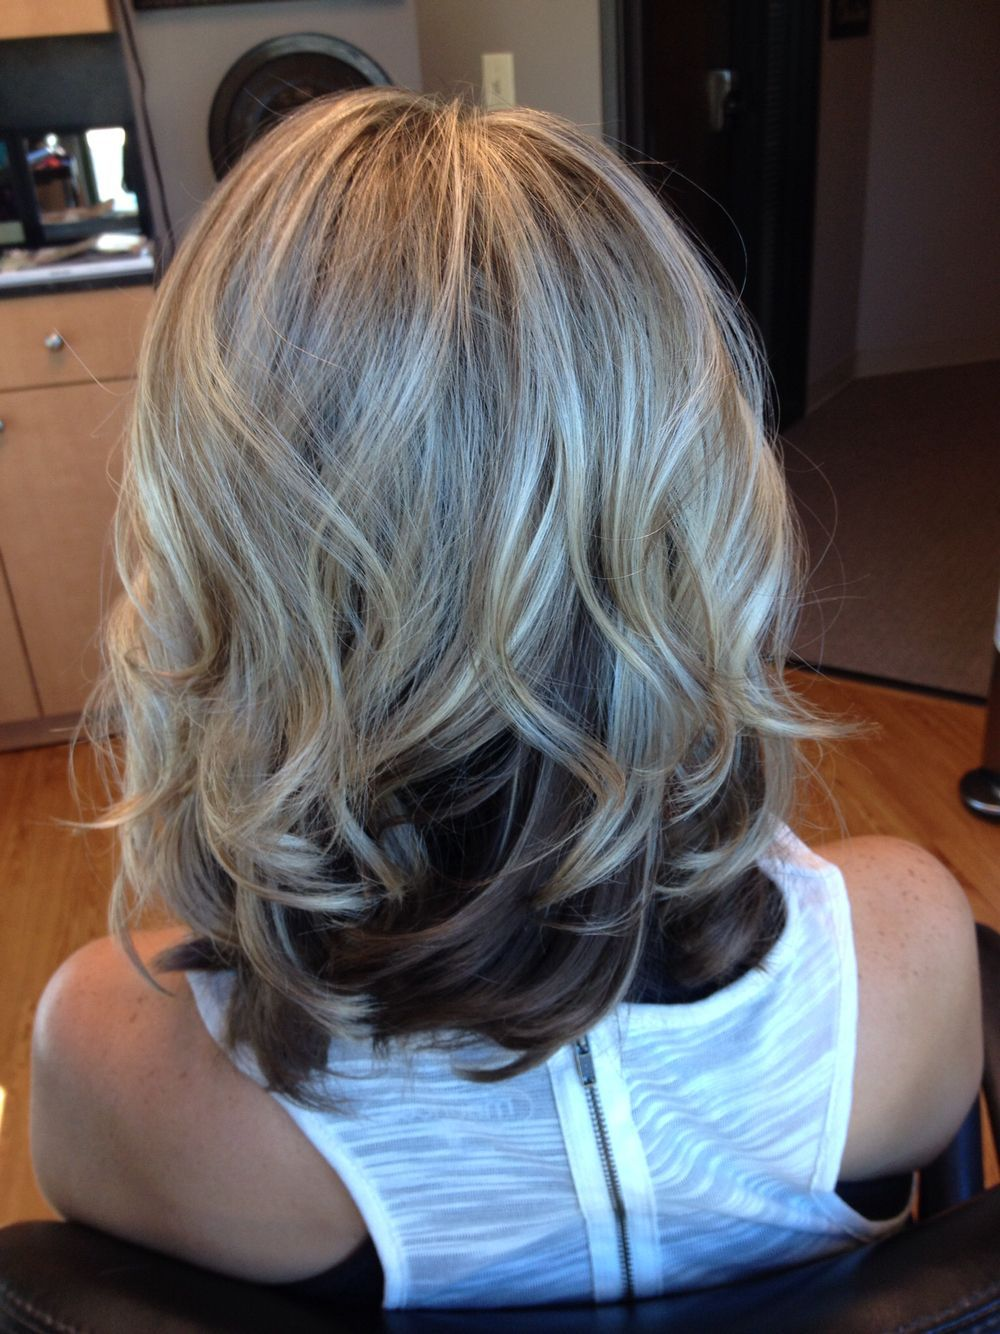 20 Brown Hair With Blonde Highlights On Top Dark Underneath Hair